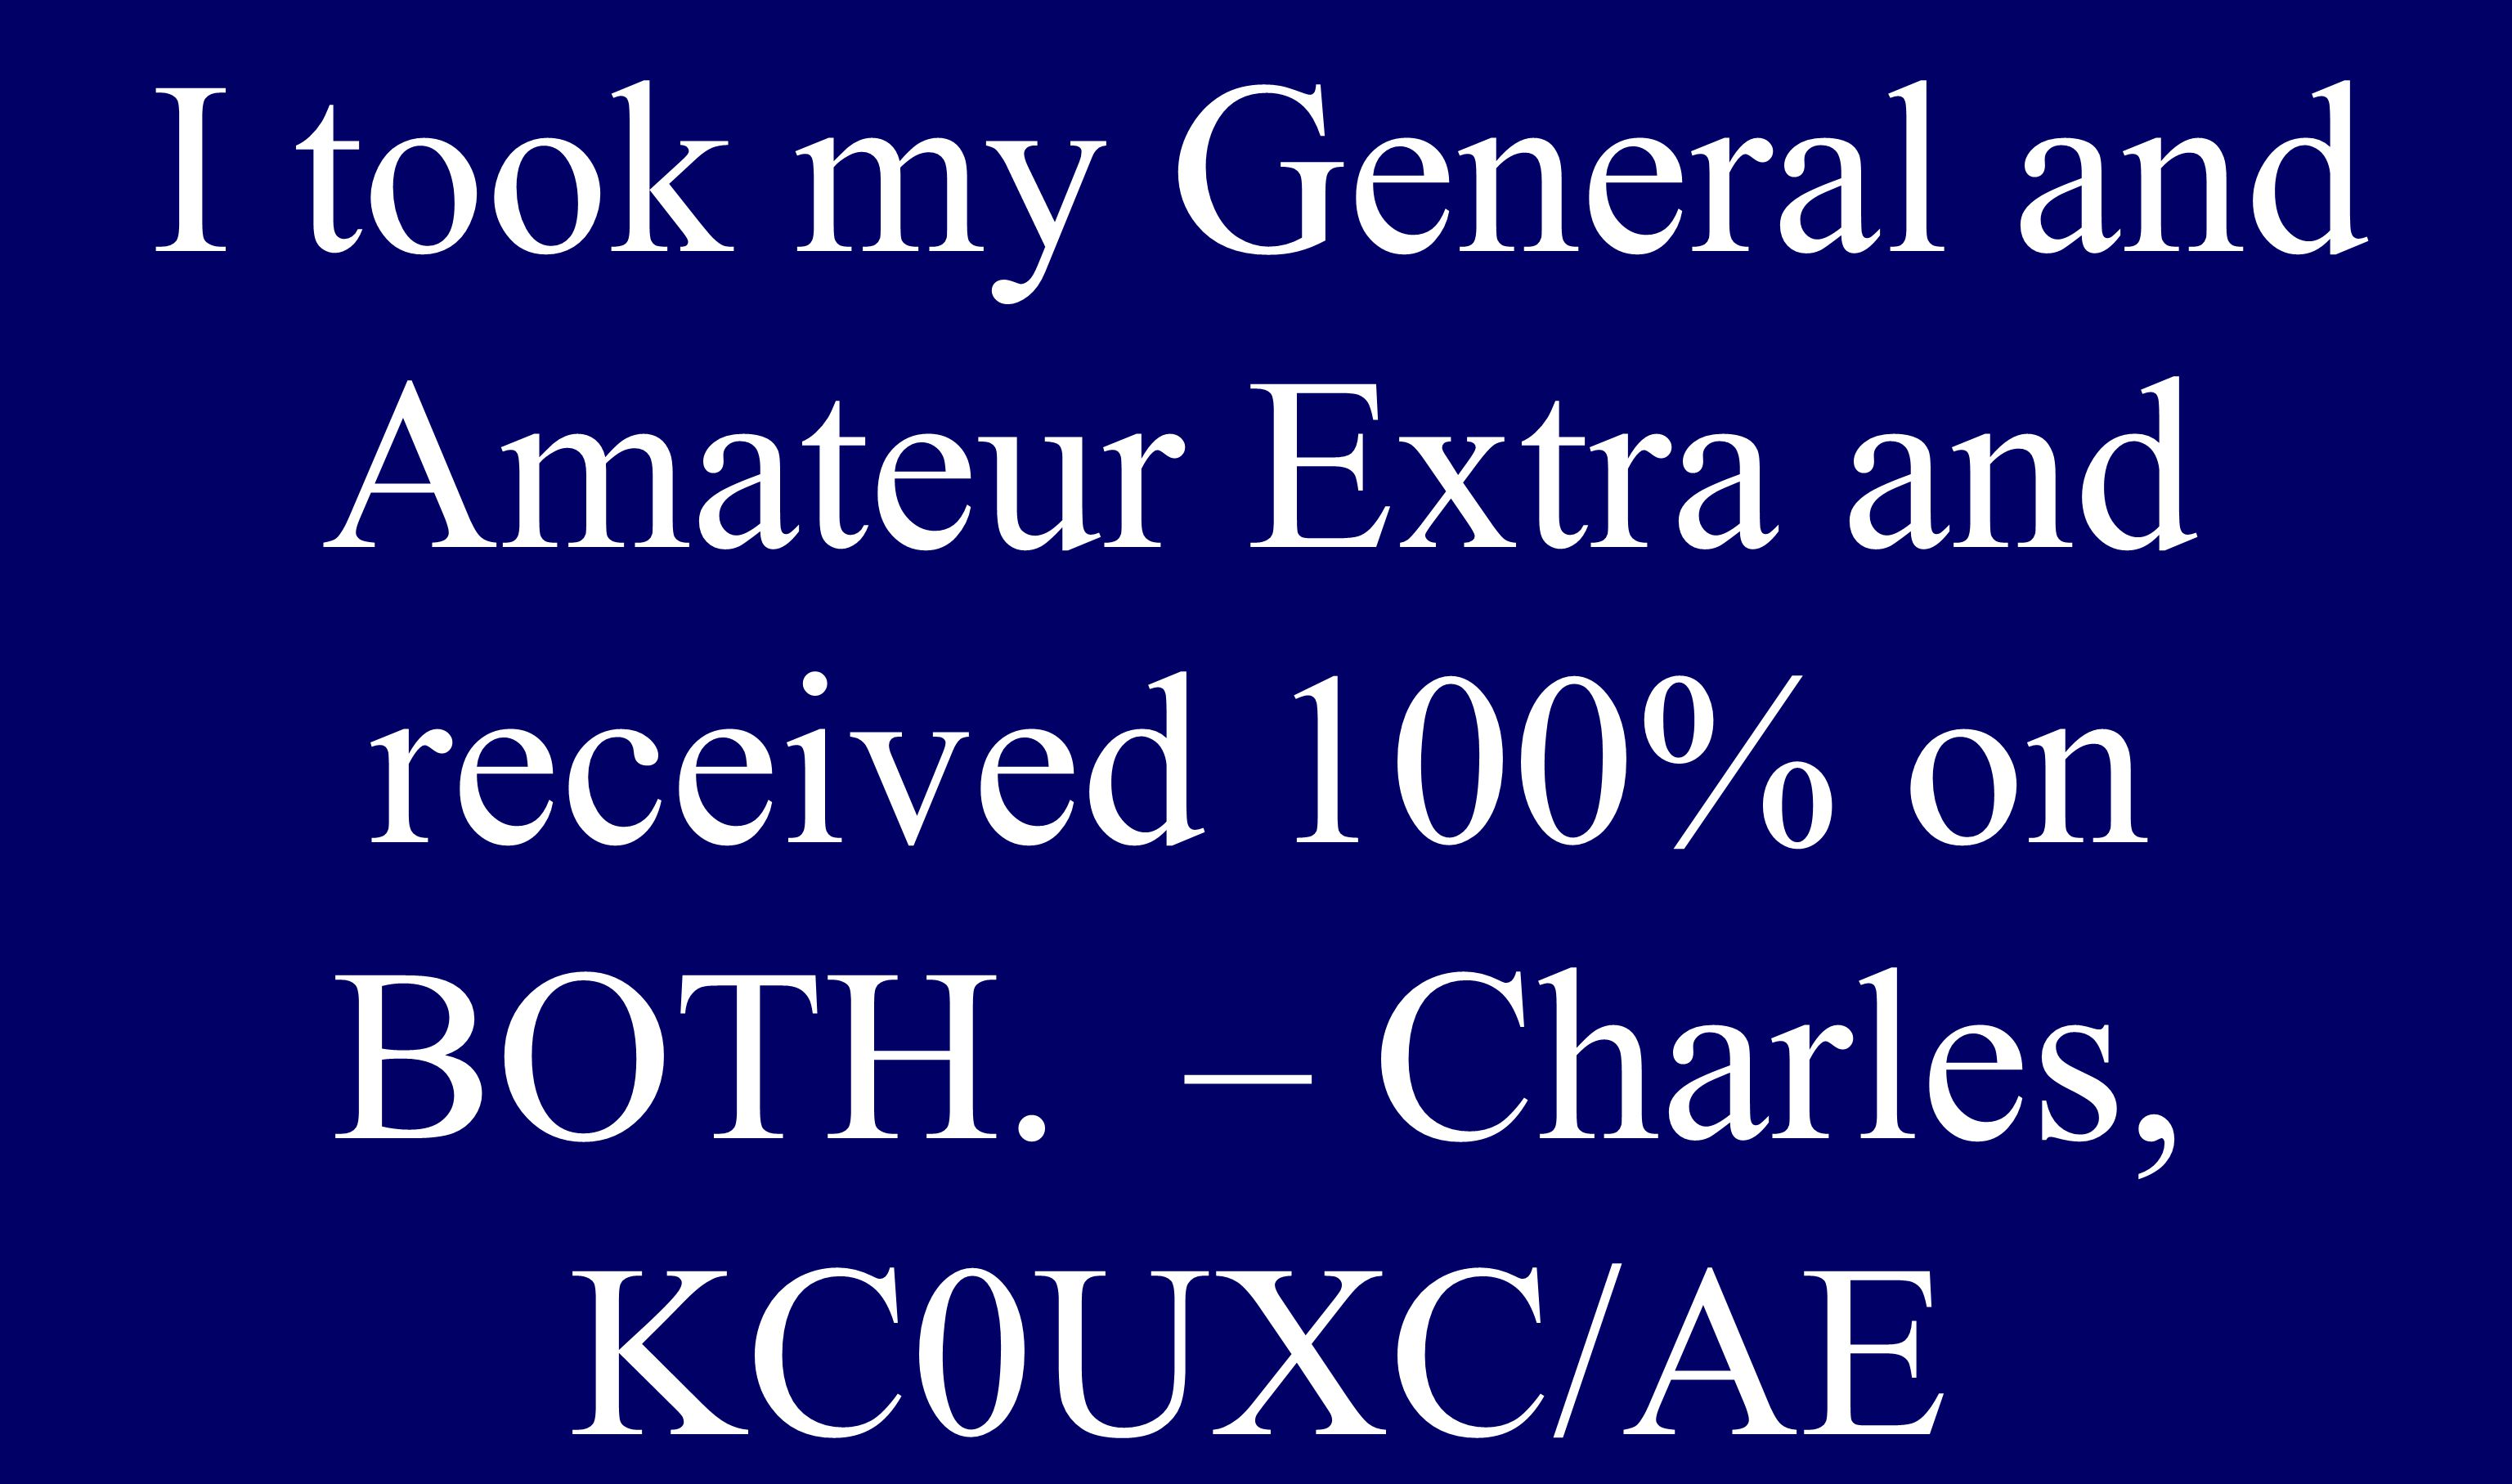 I took my General and Amateur Extra and received 100% on BOTH. – Charles, KC0UXC/AE